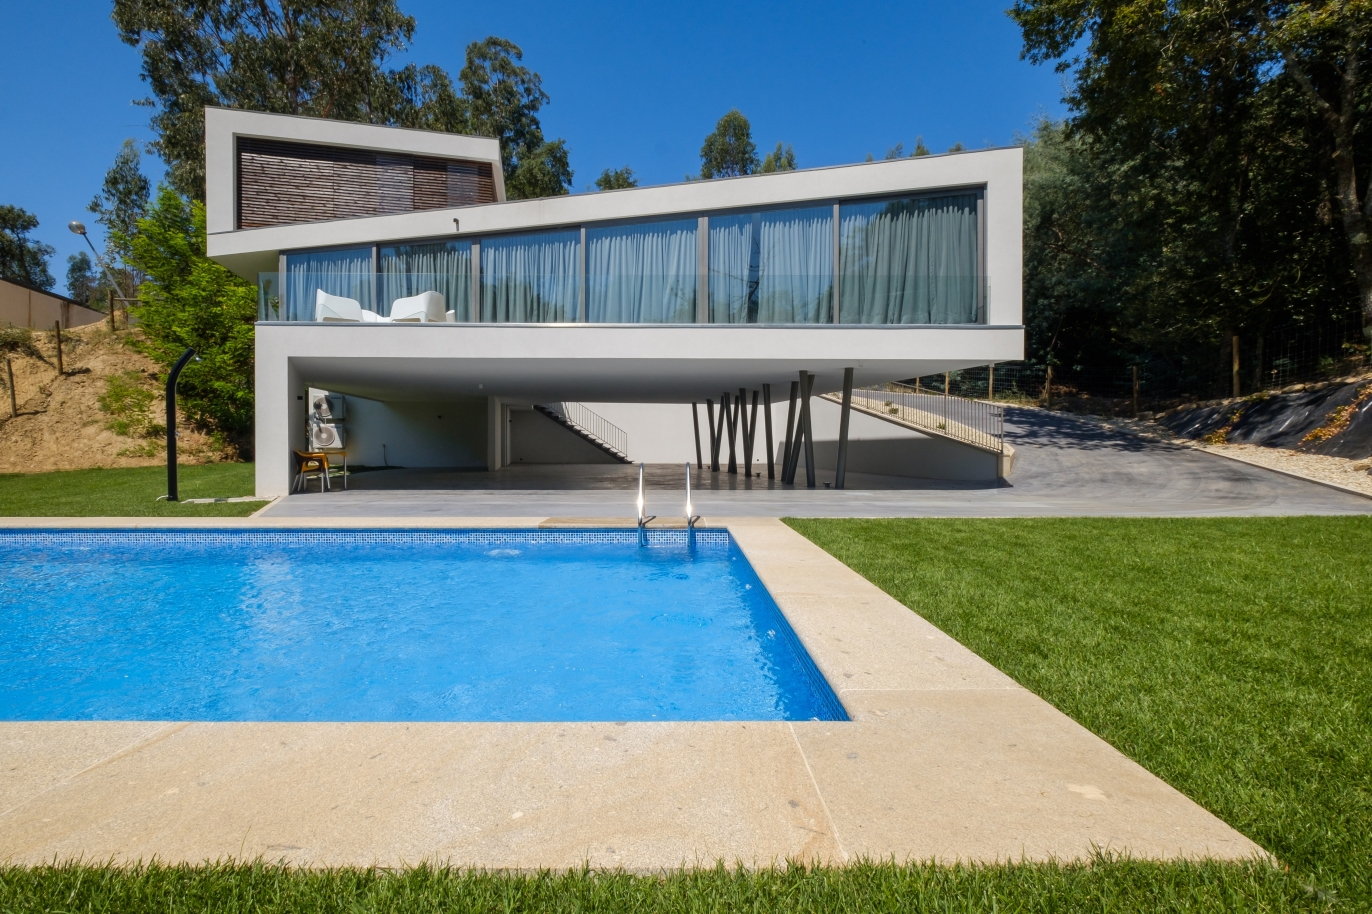 luxury-villa-with-pool-near-the-golf-course-ponte-de-lima-portugal